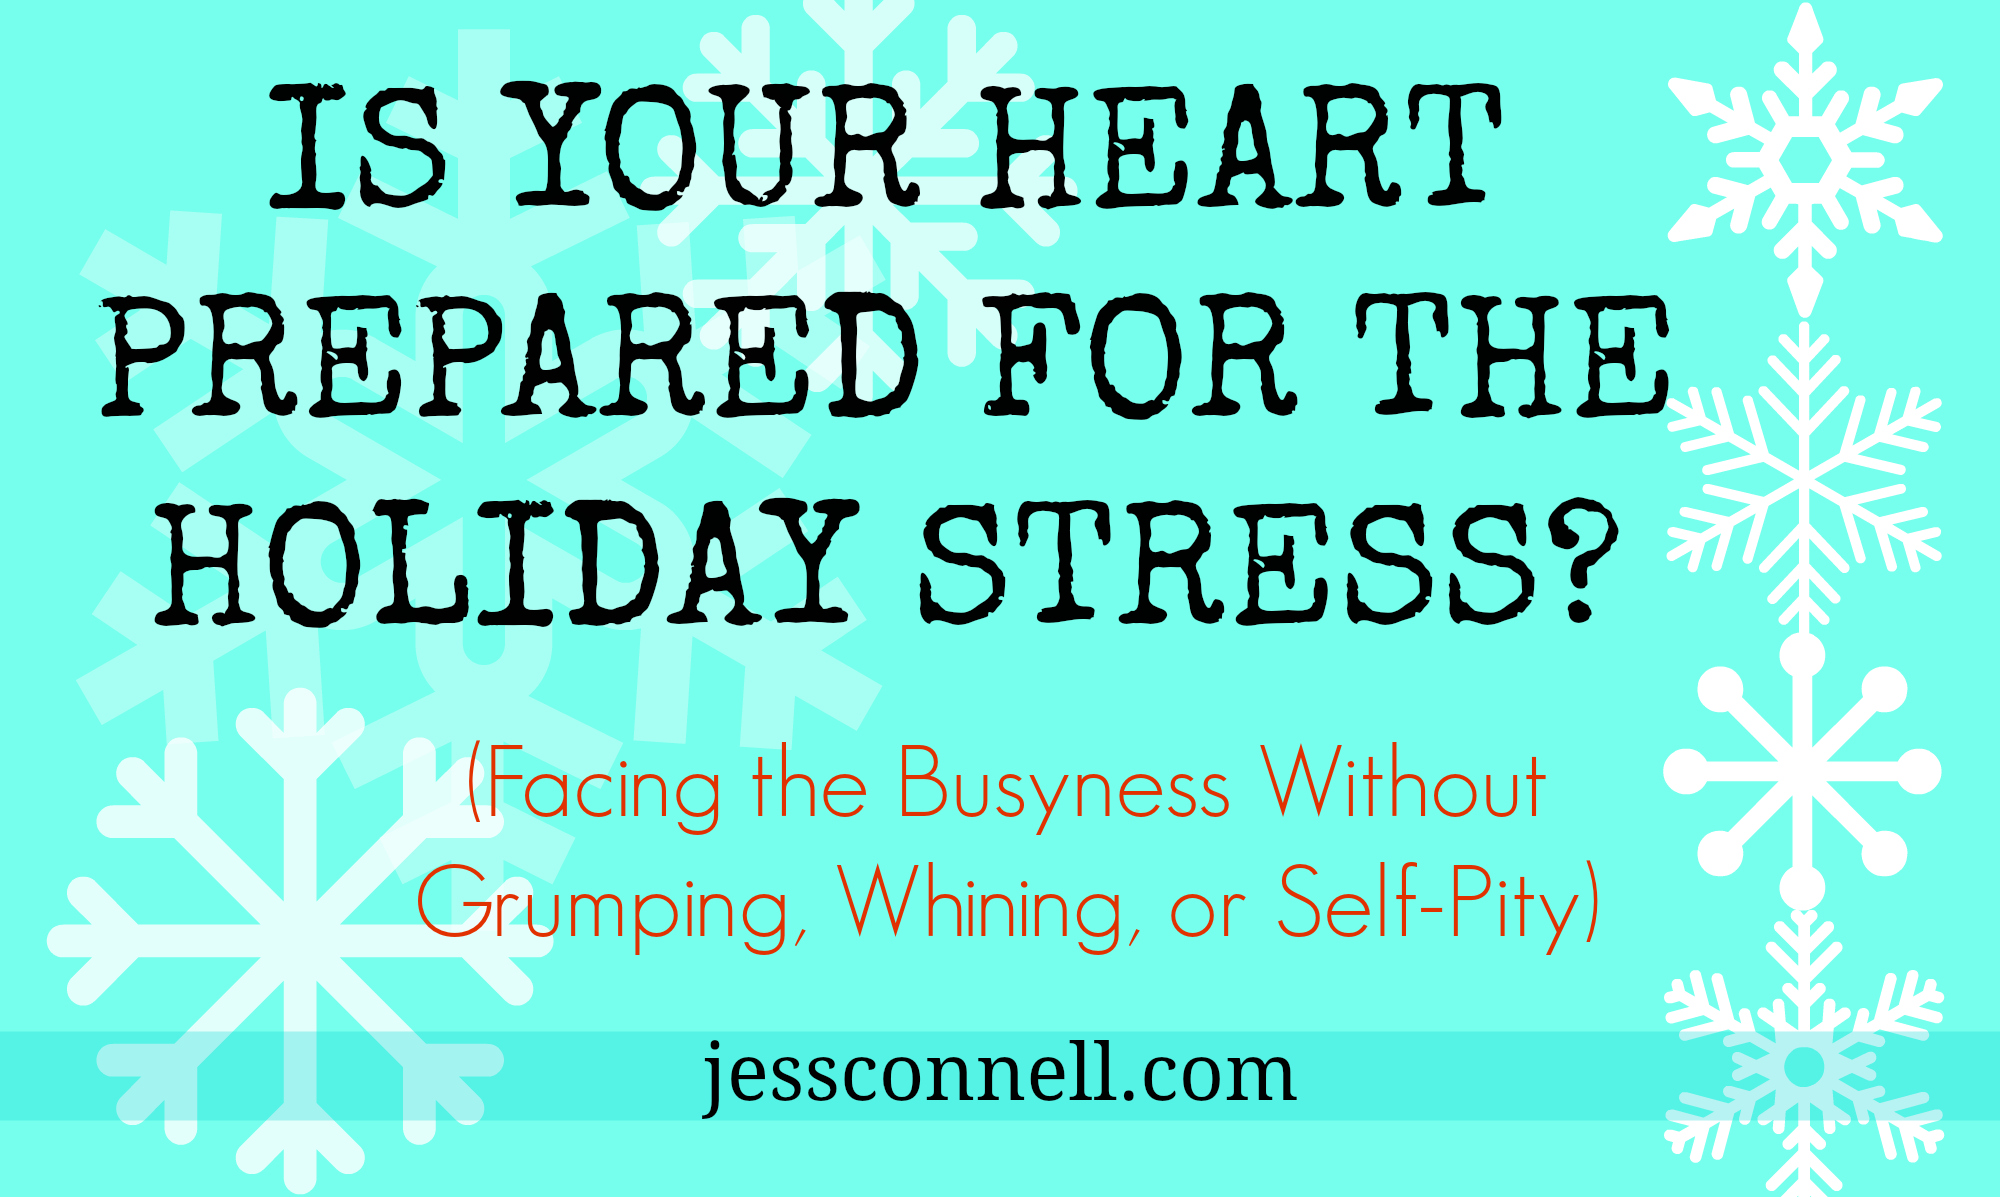 Is Your Heart Prepared for the Holiday Stress? // Facing the Busyness Without Grumping, Whining, or Self-Pity // jessconnell.com